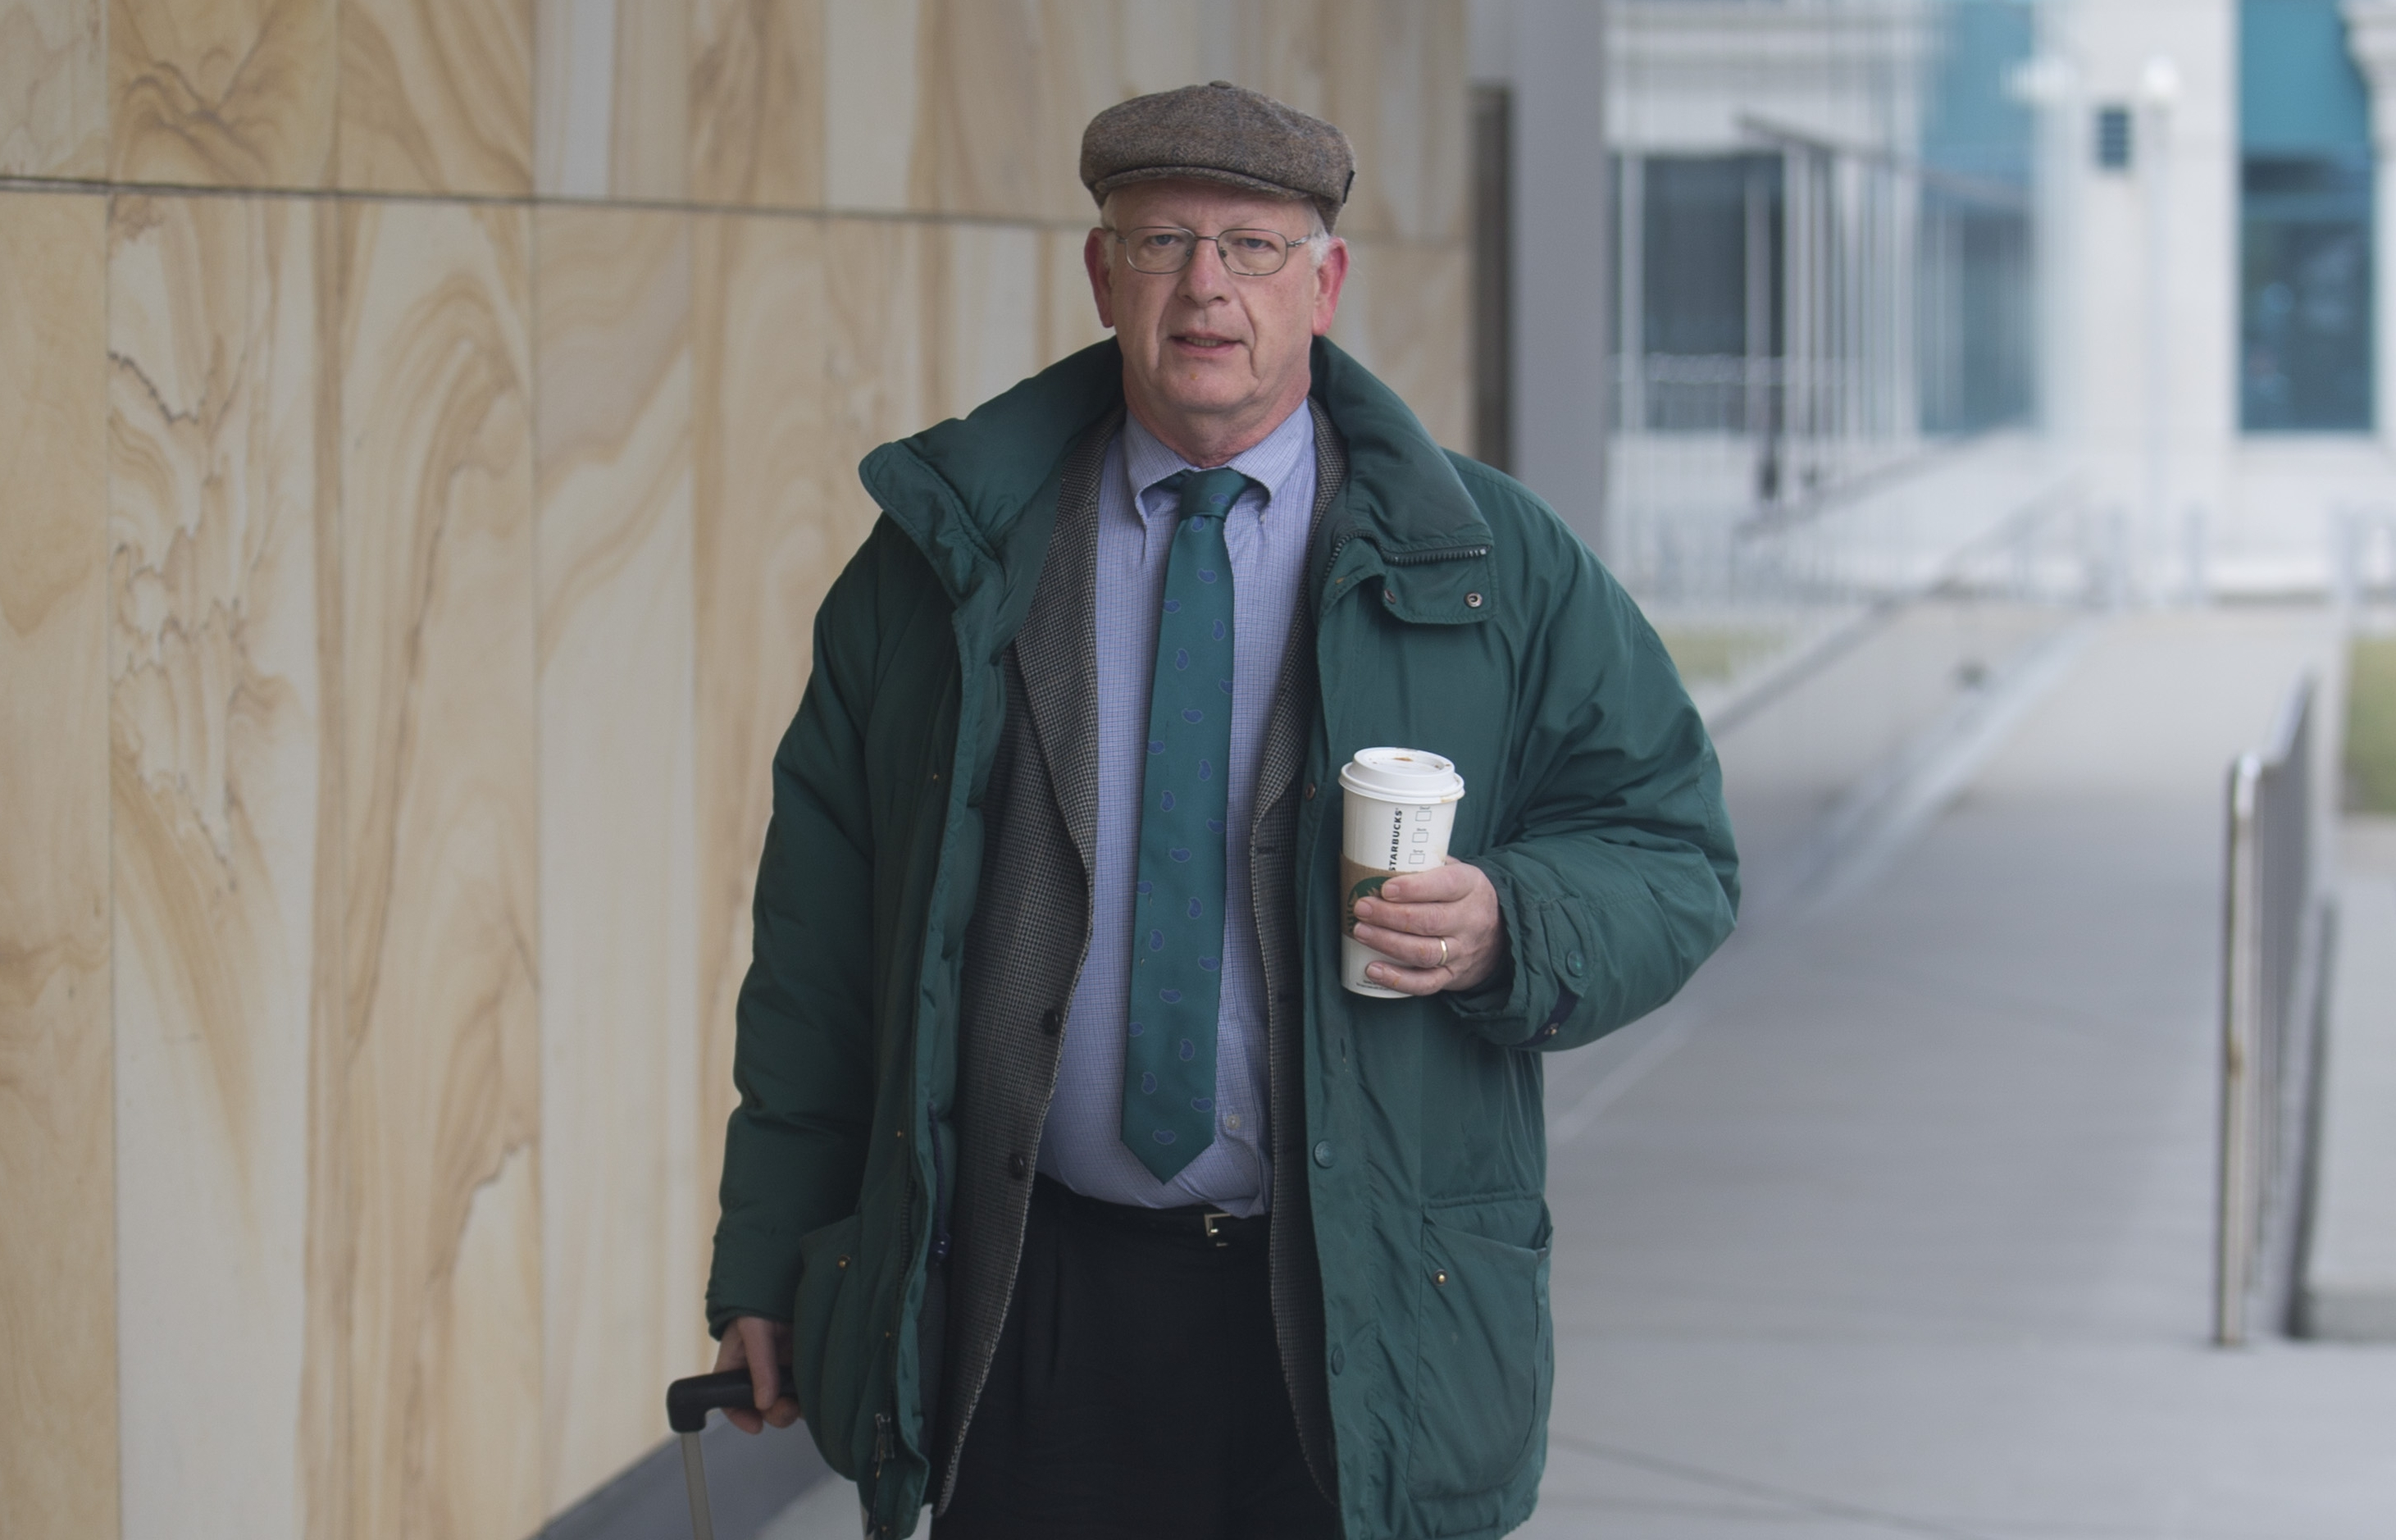 Mike MacQueen, one of the country's foremost war crimes investigators, arrives at Robert H. Jackson United States Courthouse on  Friday,  Jan. 27, 2017. (John Hickey/Buffalo News)